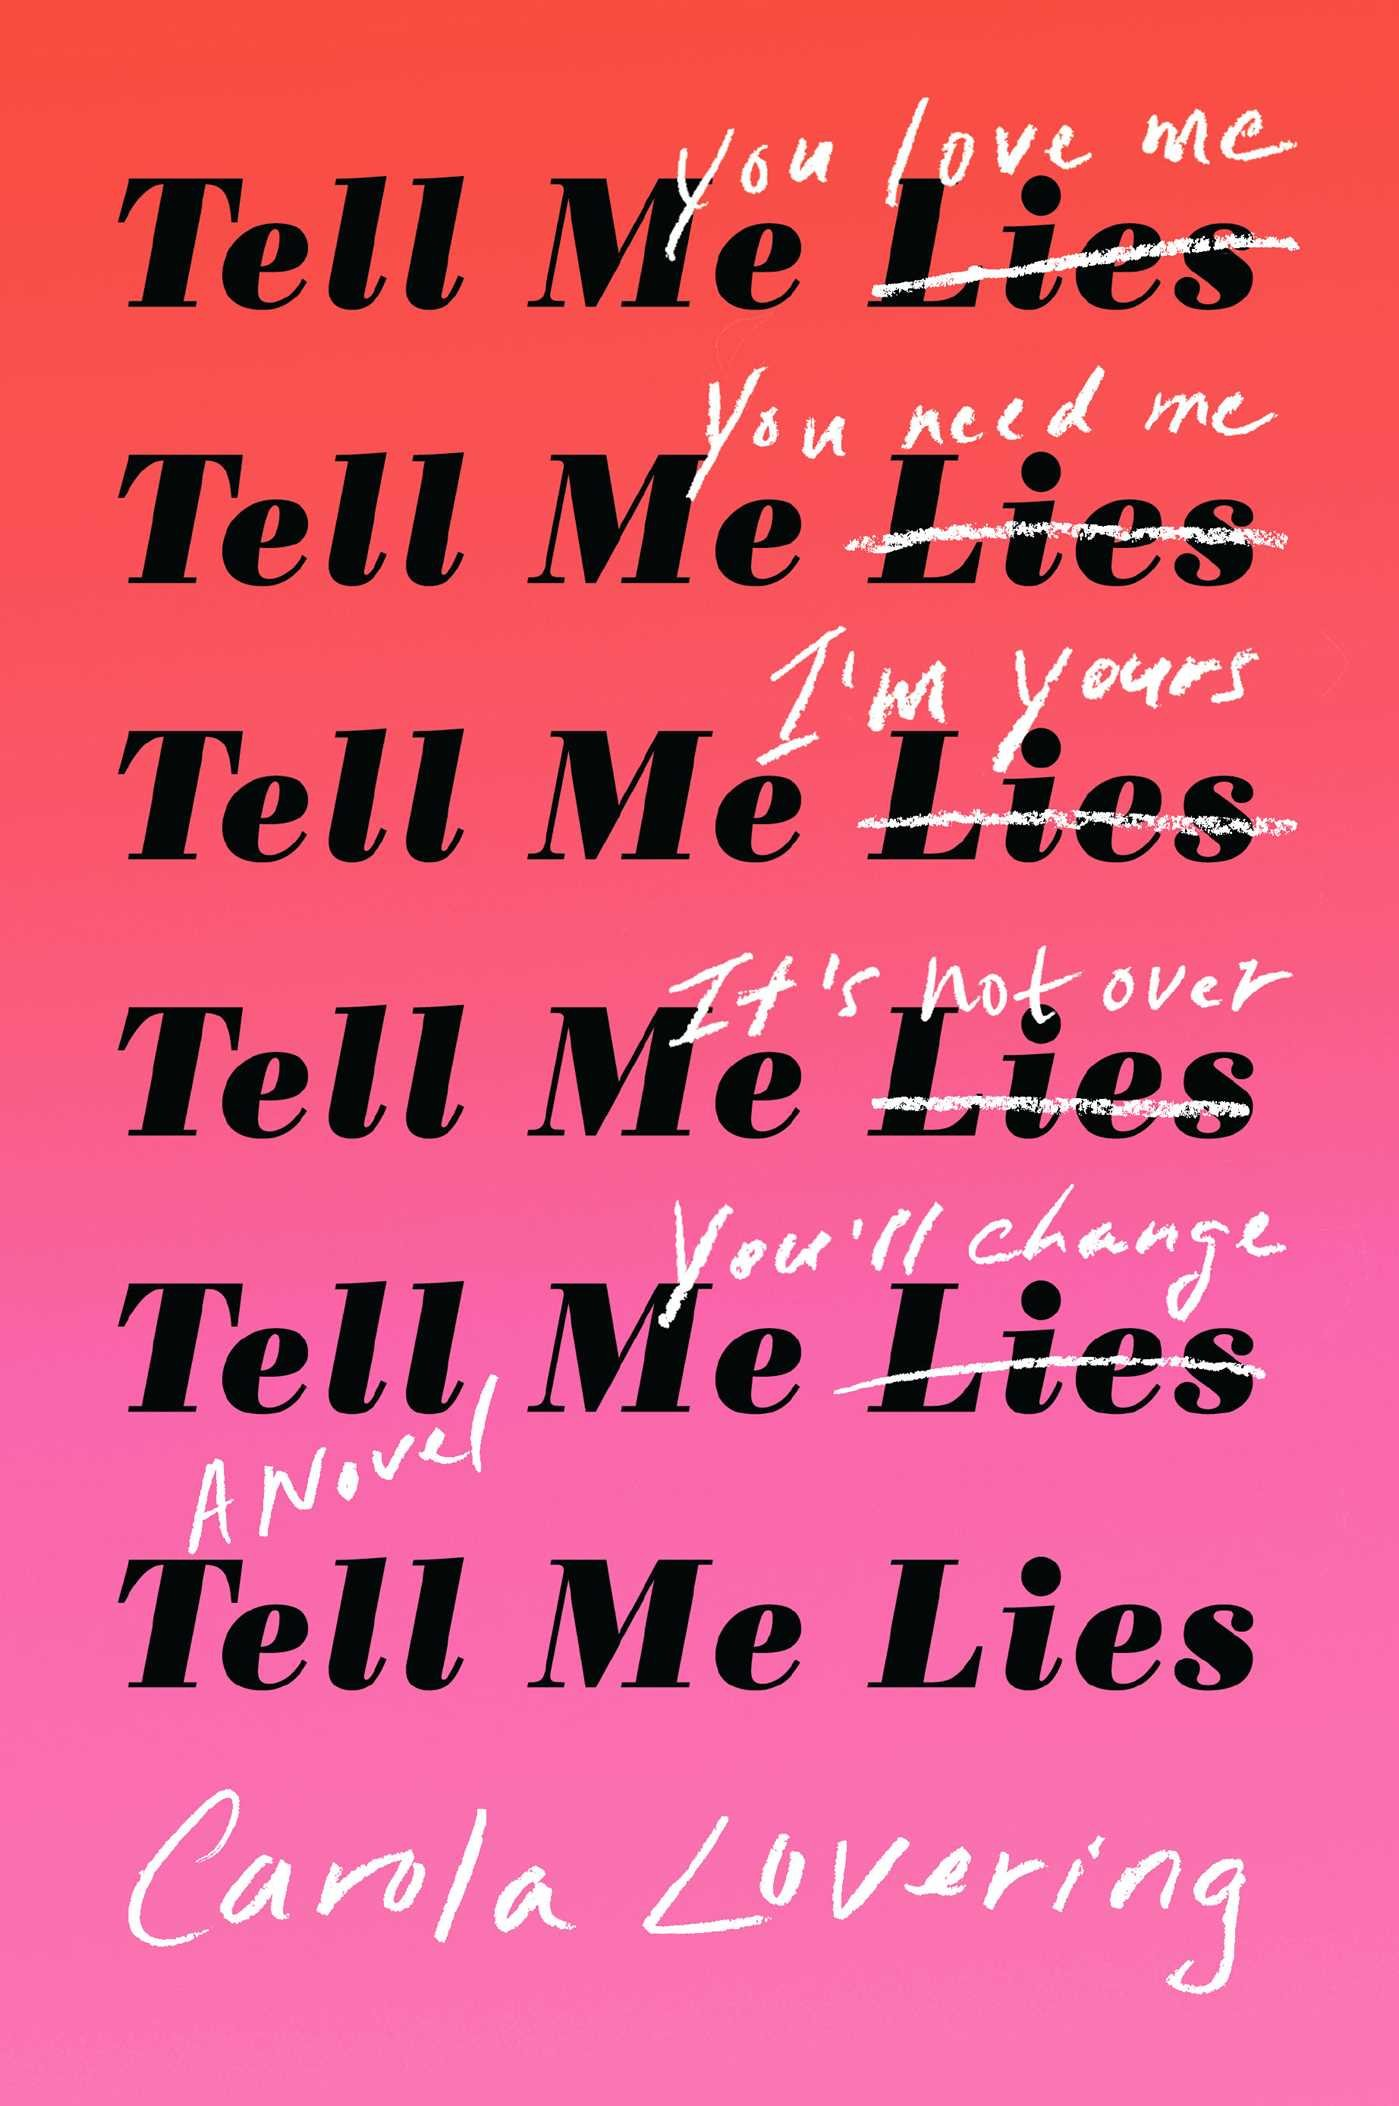 Image result for tell me lies carola lovering